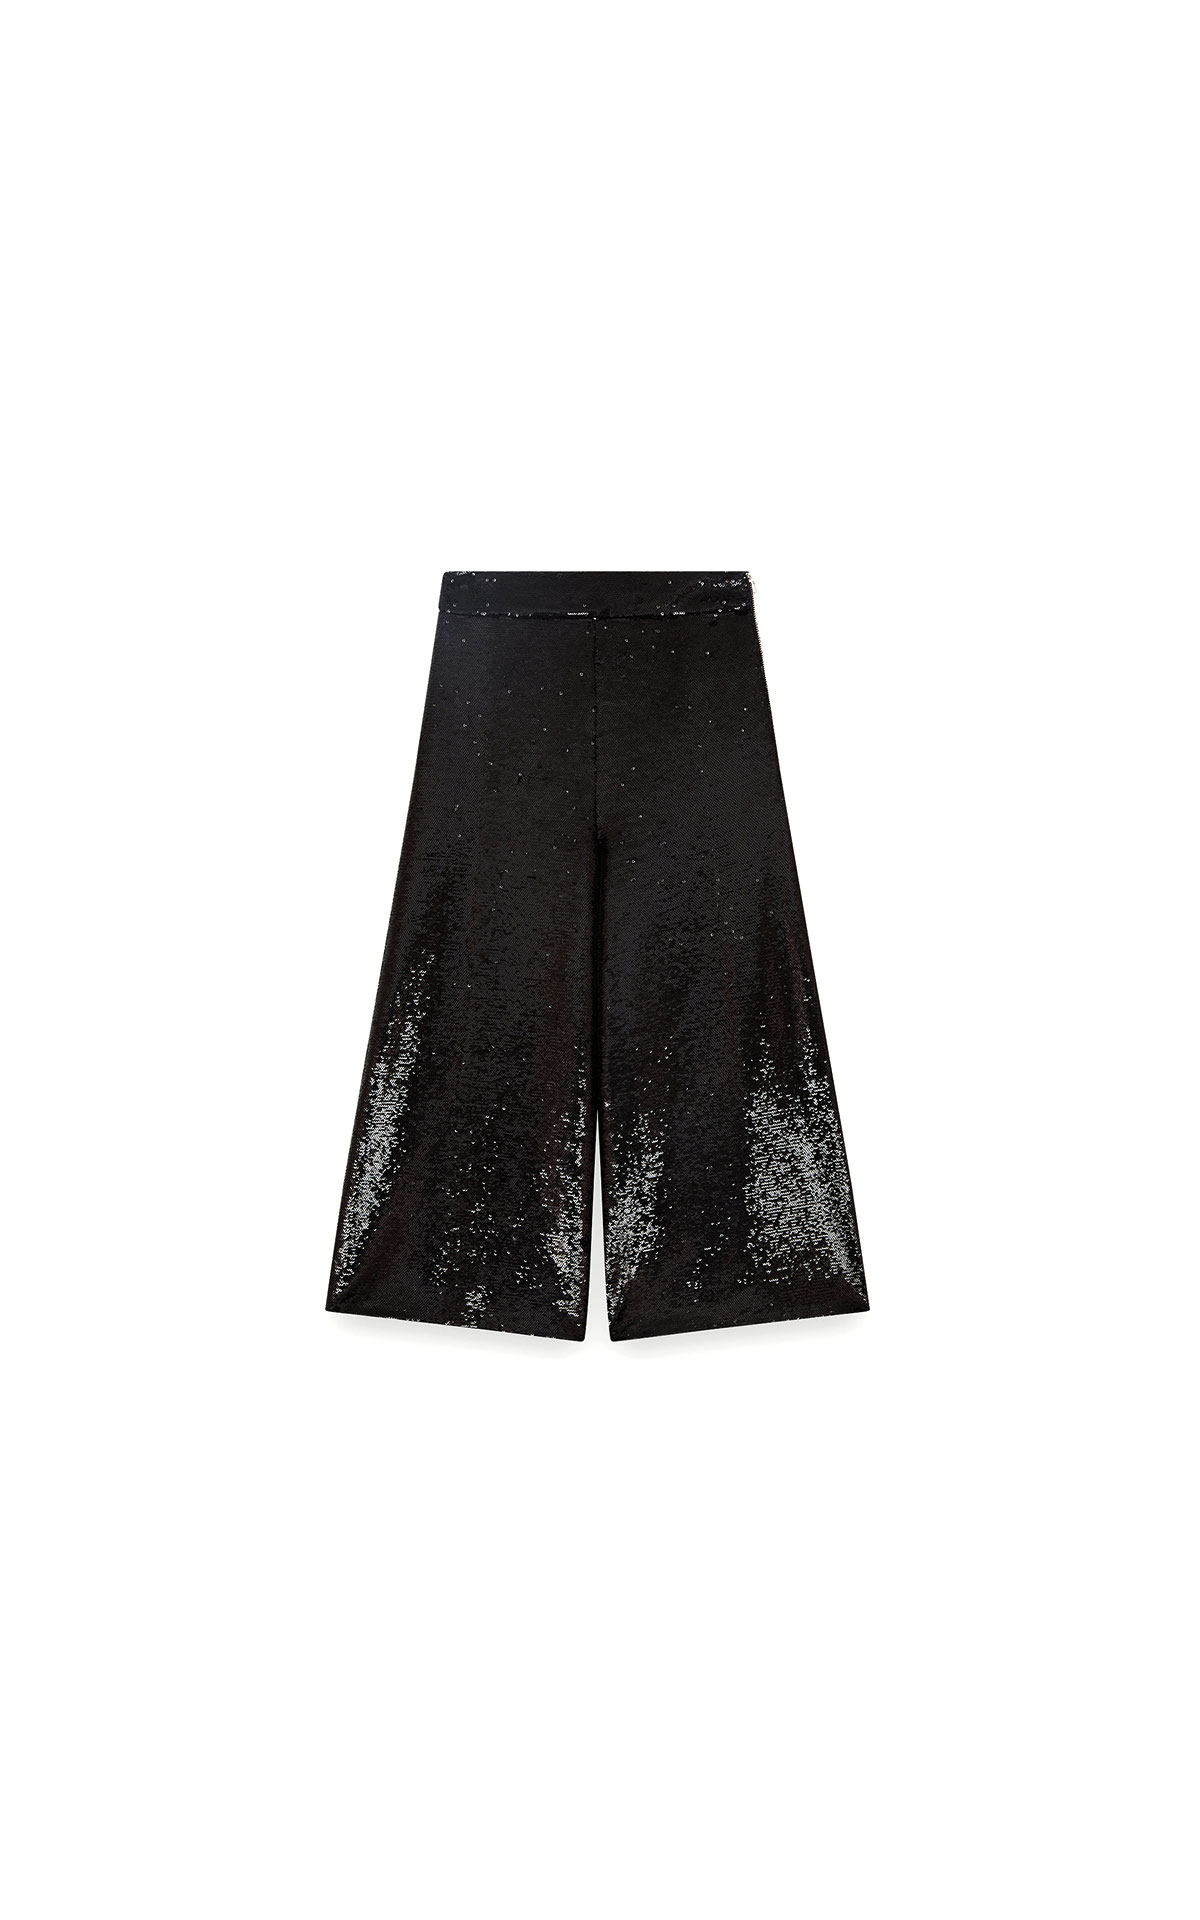 Maje Sequin bermuda-style pants in black at The Bicester Village Shopping Collection